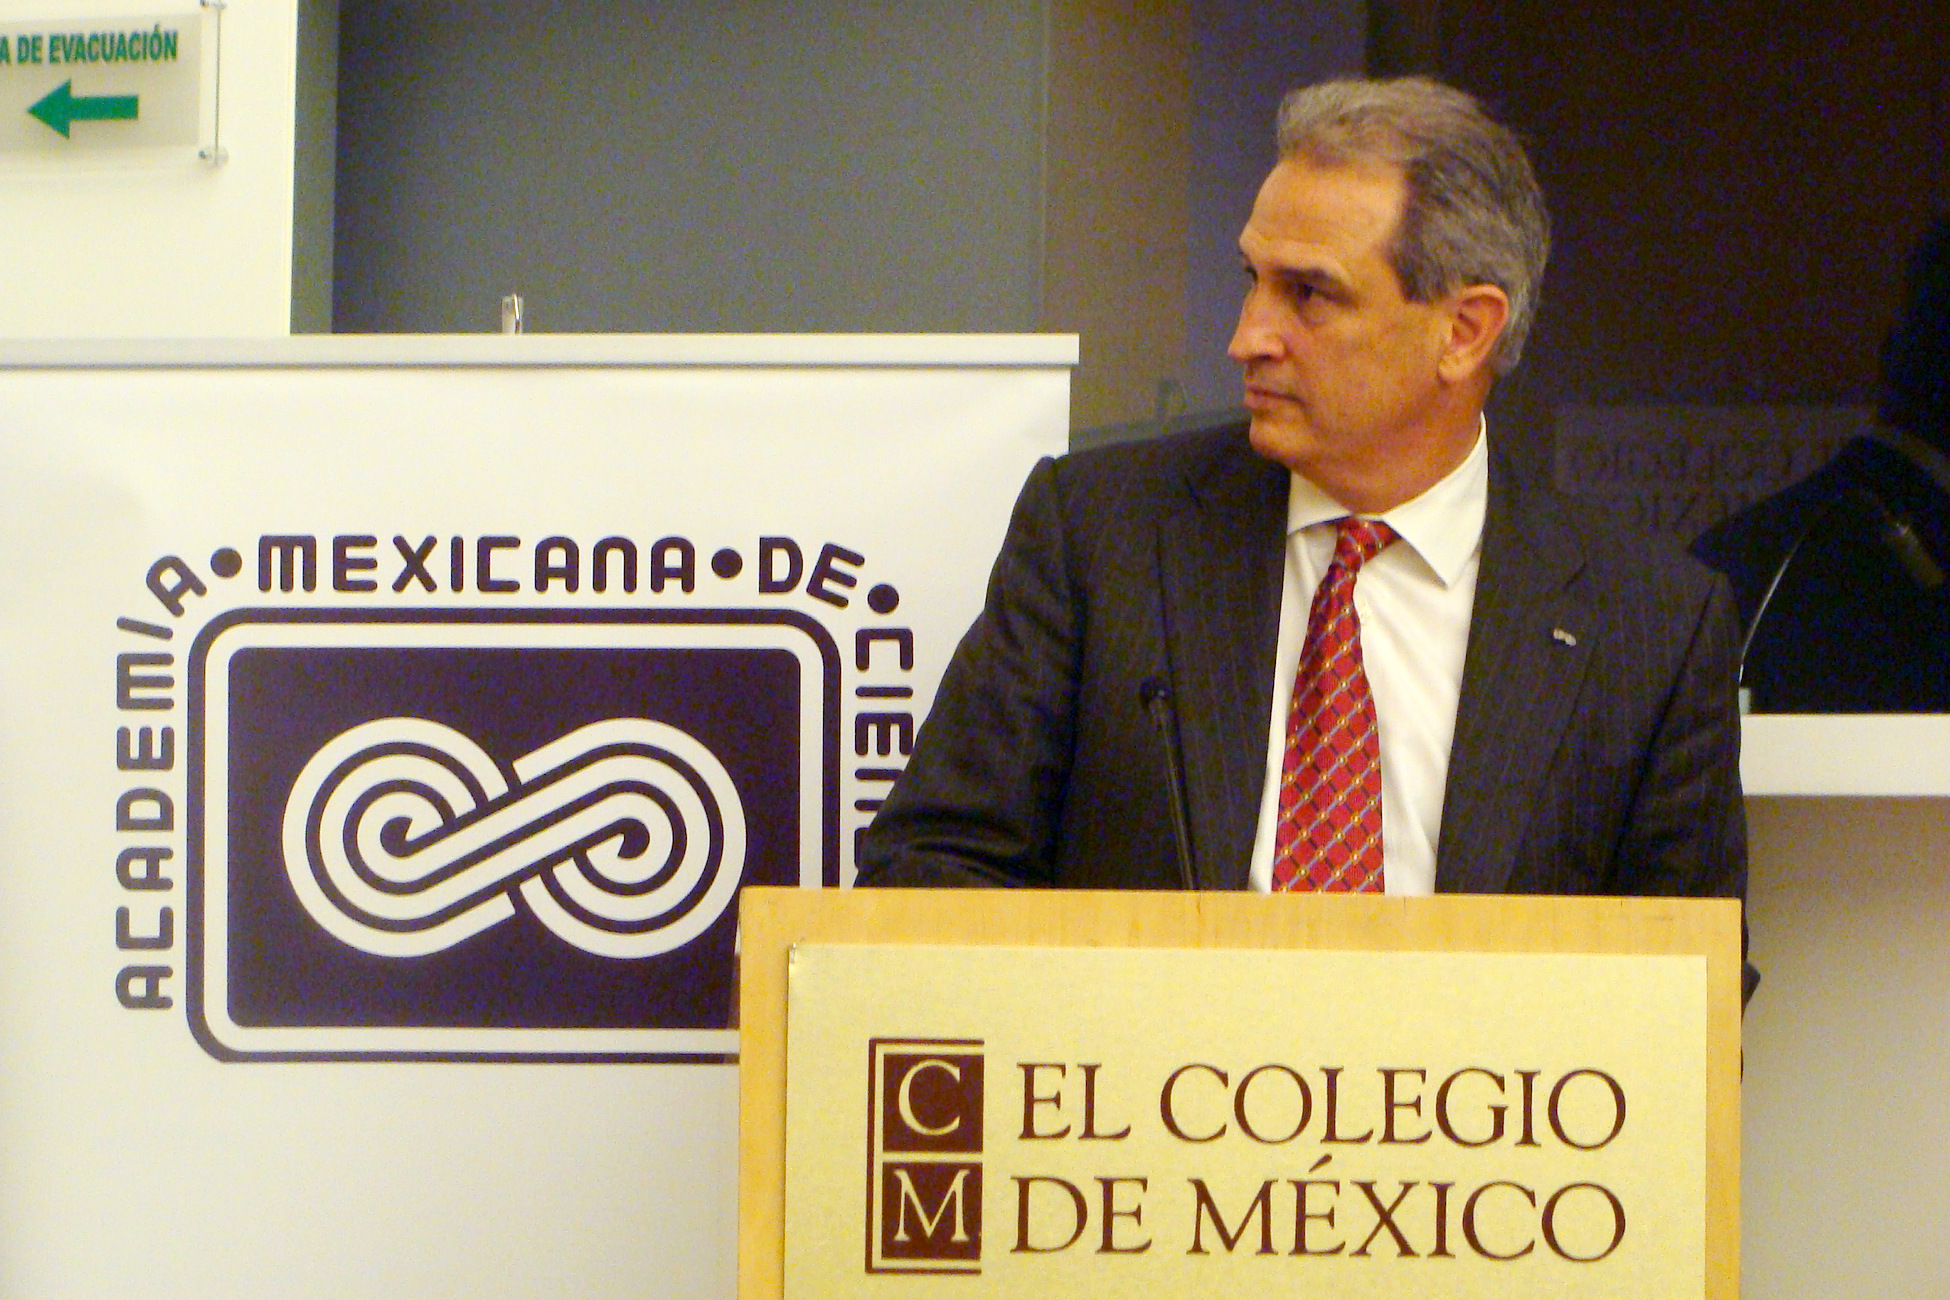 Mexico's National Academy of Sciences